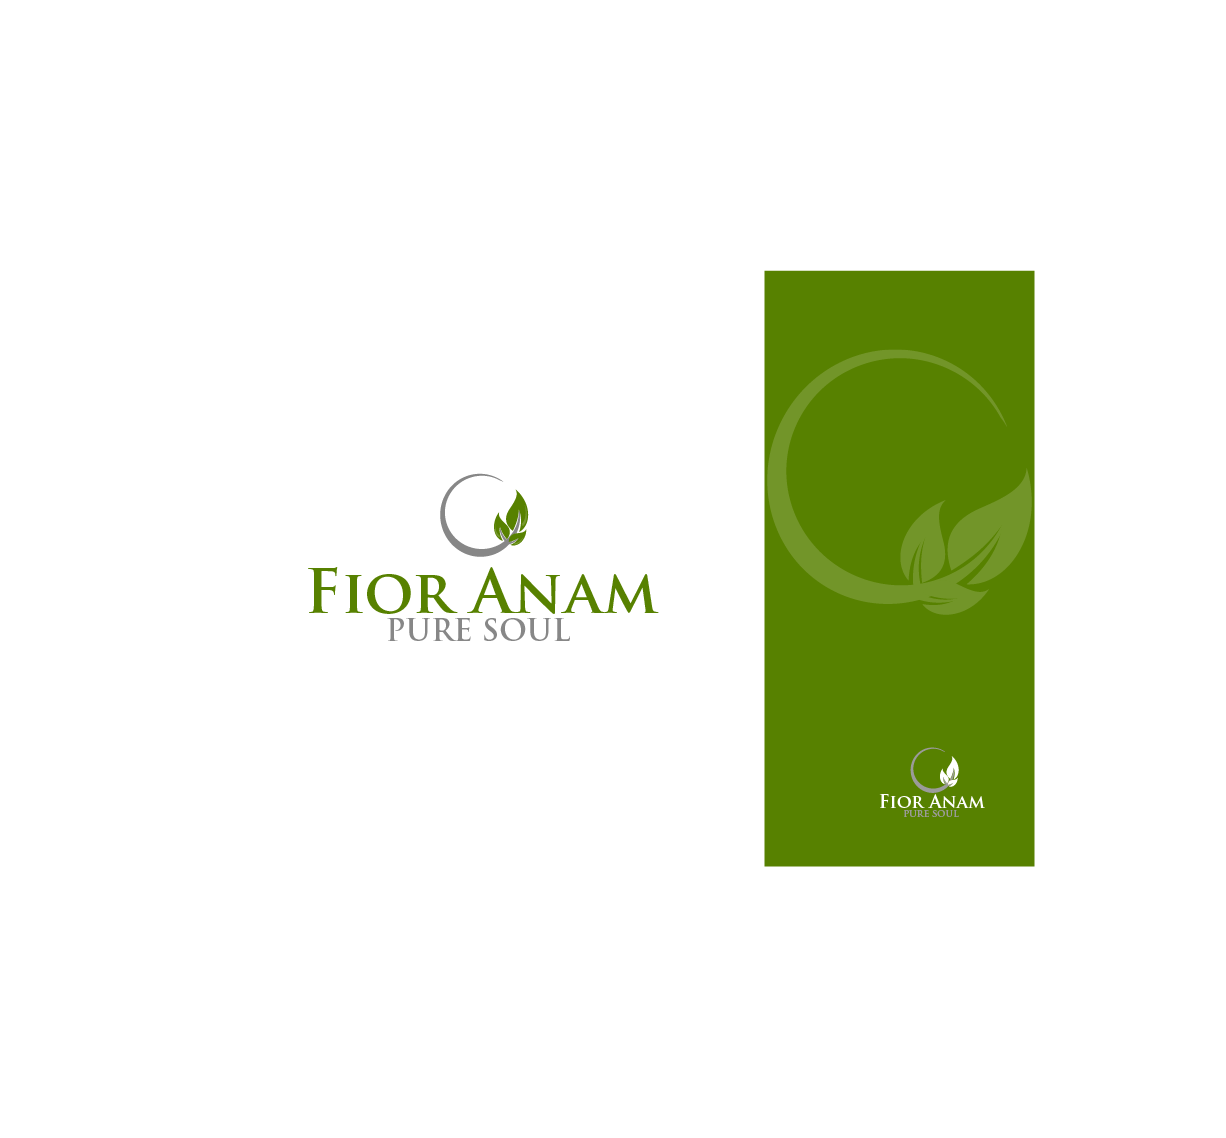 Logo Design by brands_in - Entry No. 332 in the Logo Design Contest Creative Logo Design for Fior Anam.